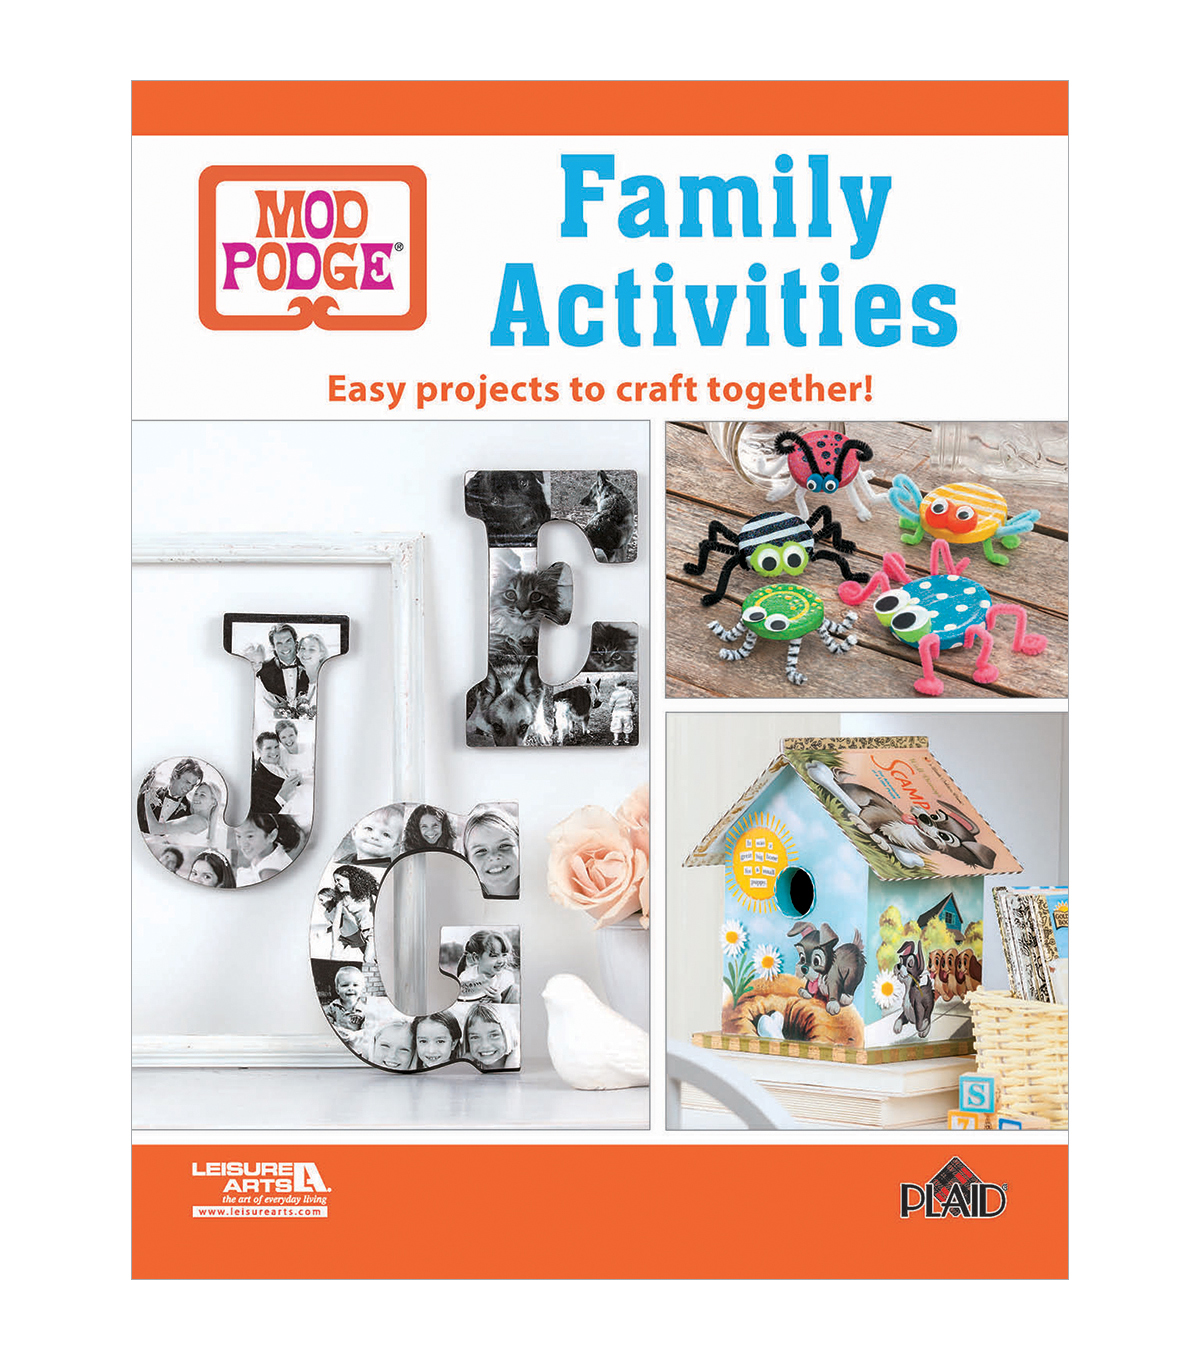 Mod Podge® Family Activities Craft Book